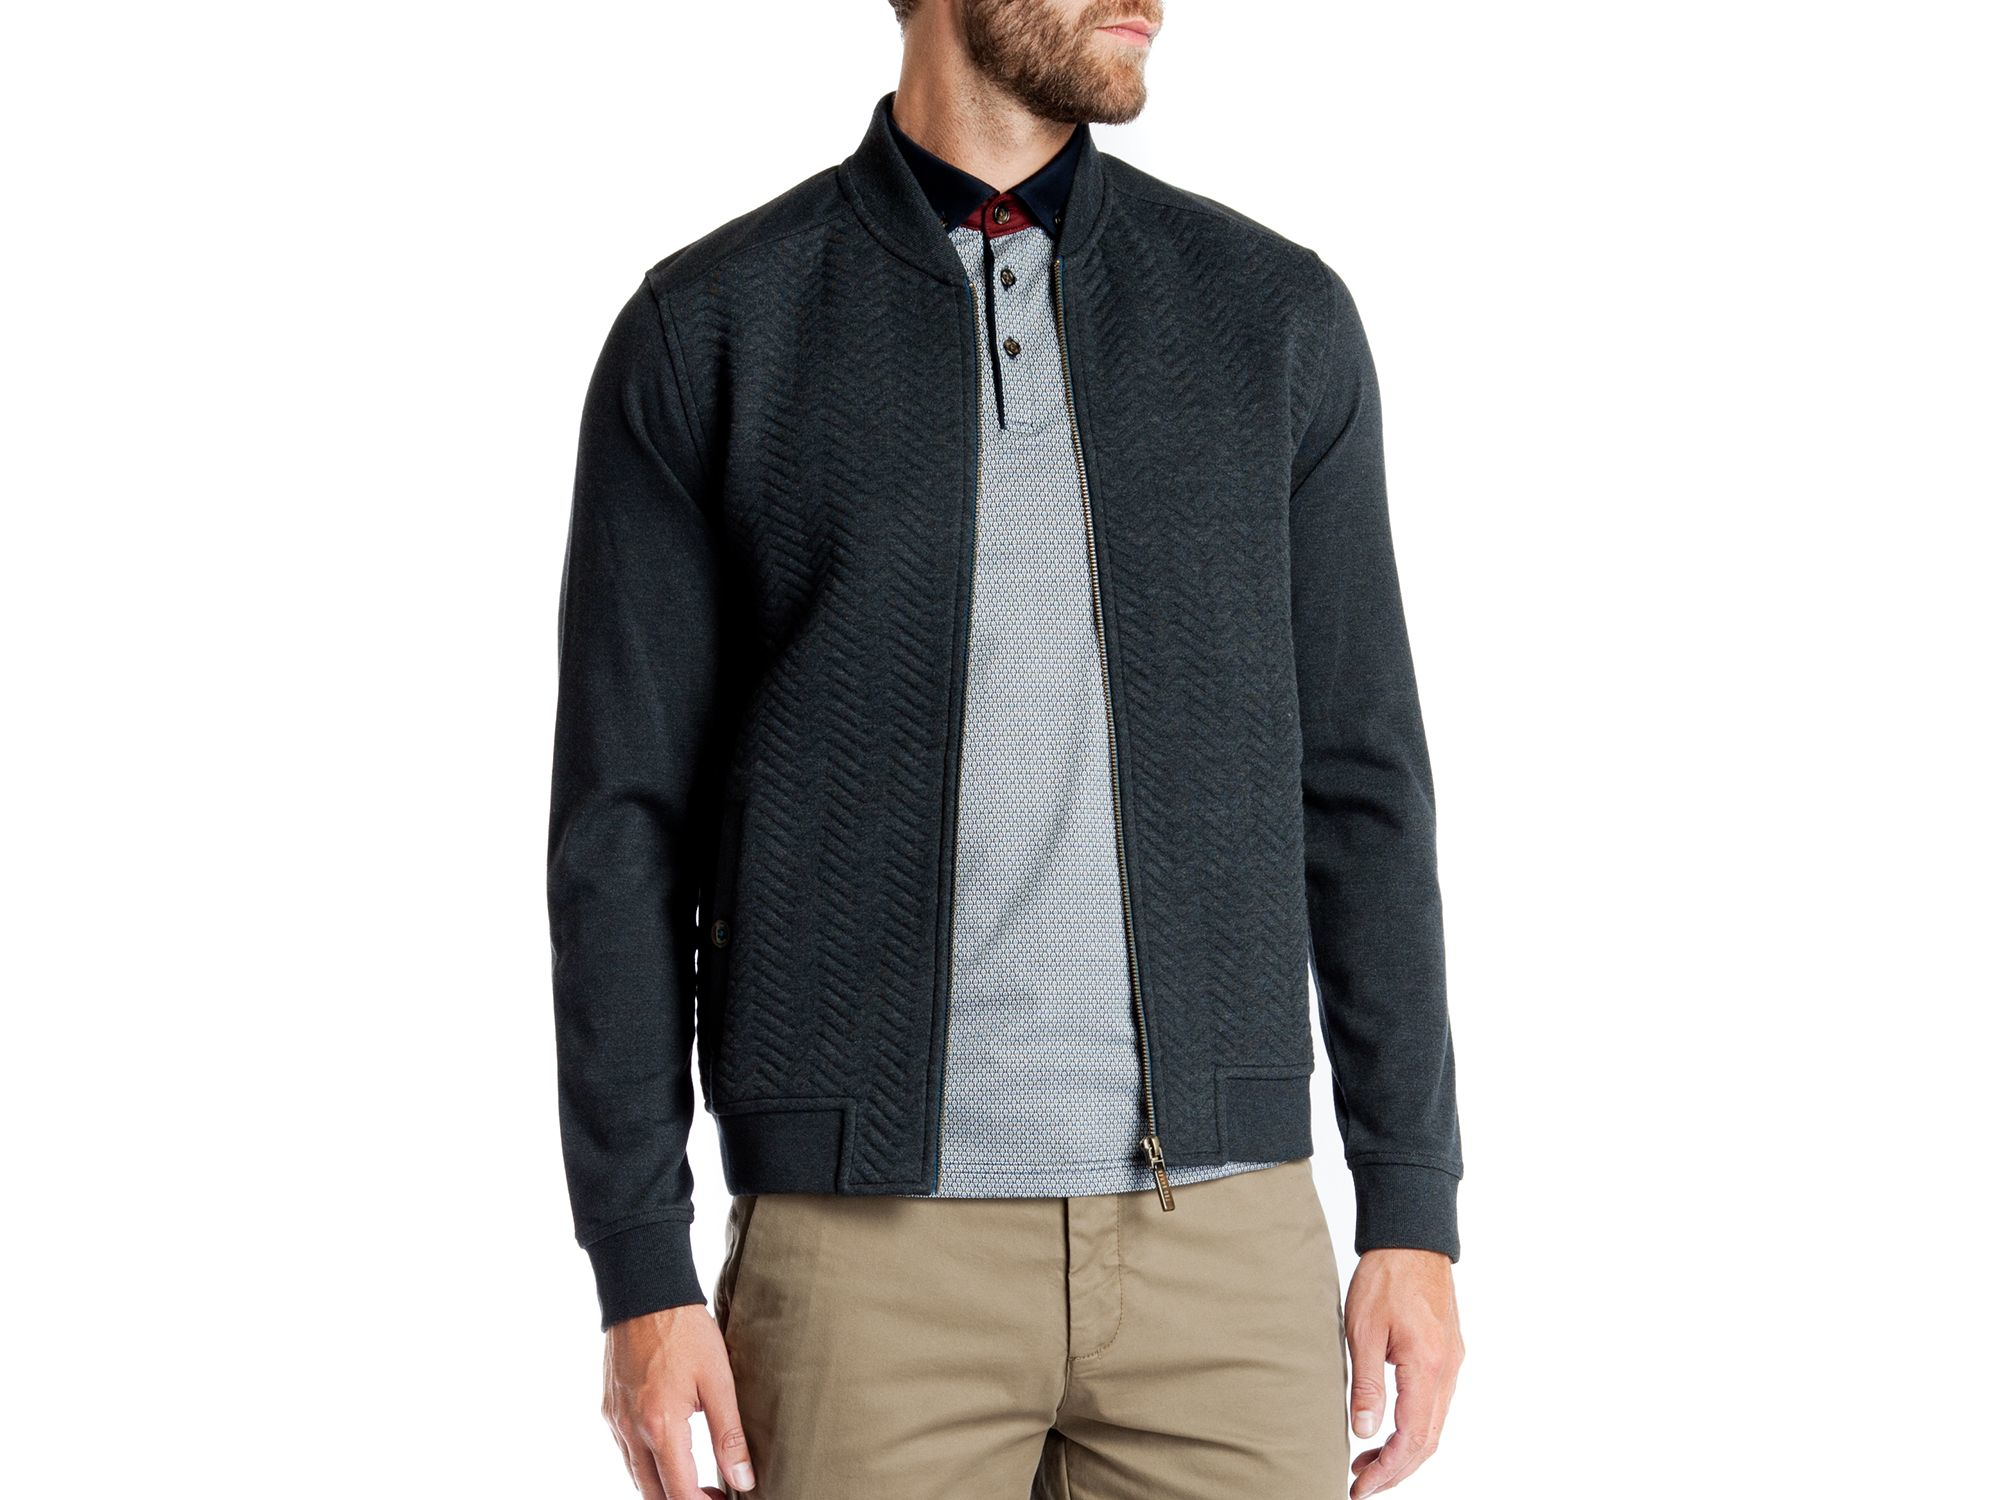 95f838dbd Lyst - Ted Baker Deeaz Quilted Herringbone Bomber Jacket in Gray for Men